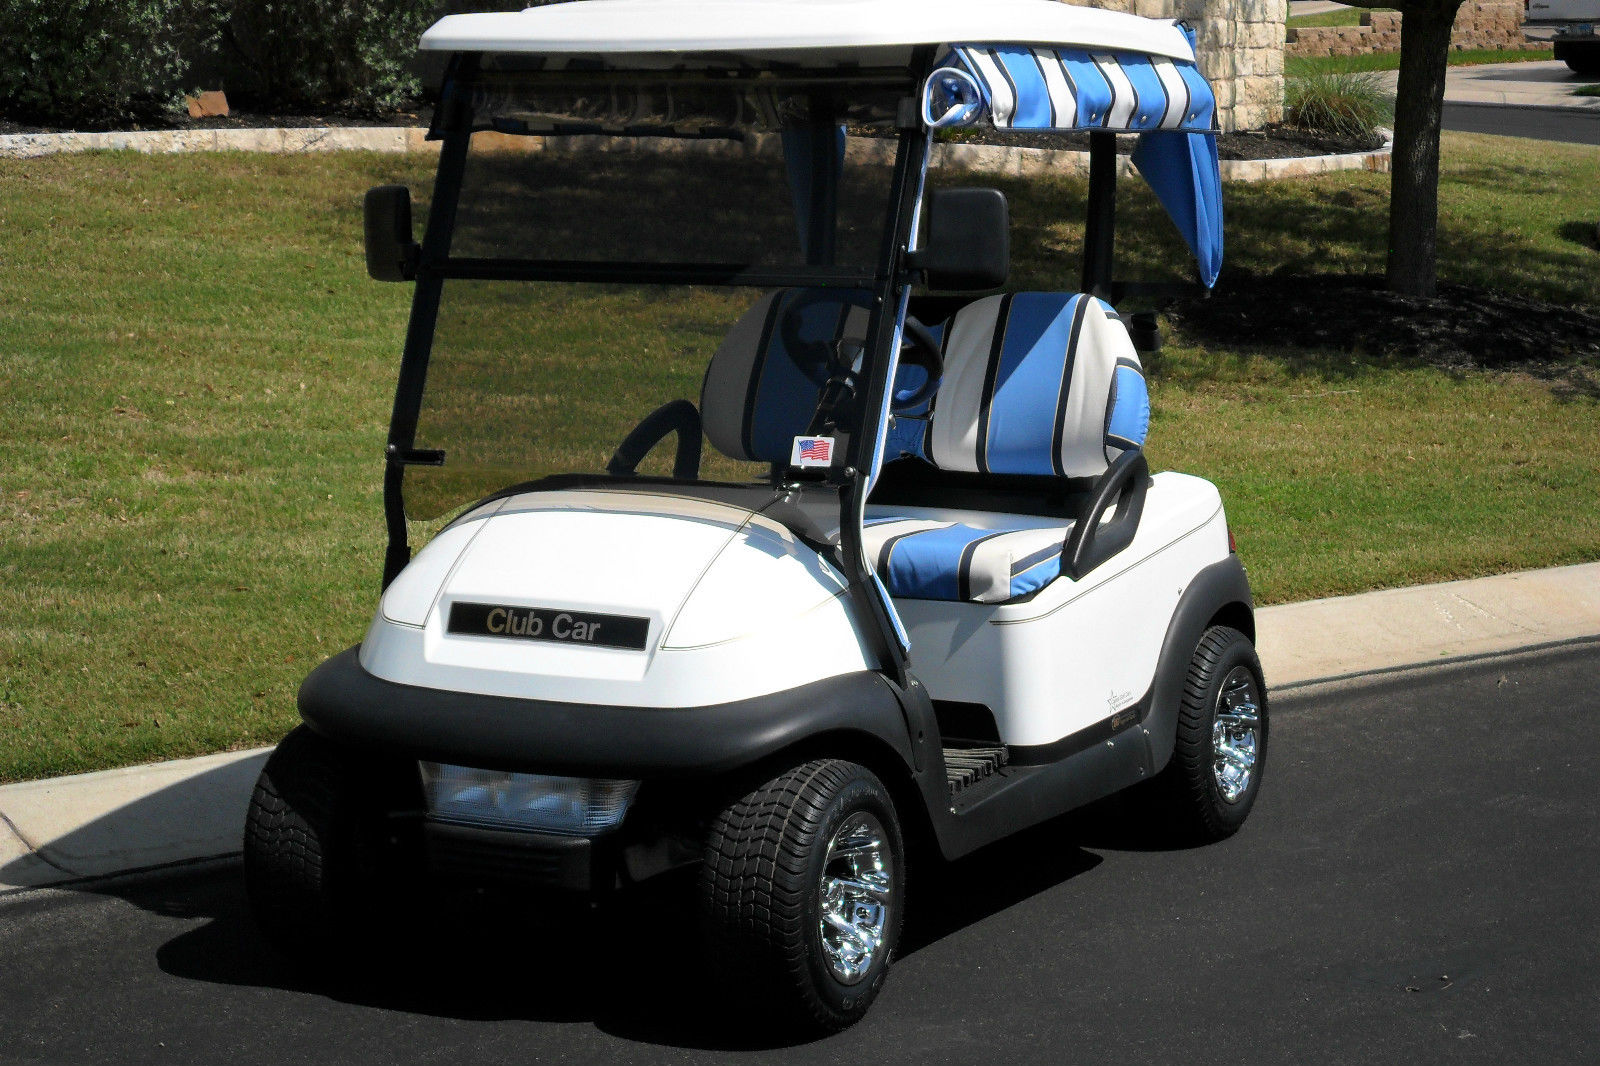 How To Charge Club Car Golf Cart Batteries